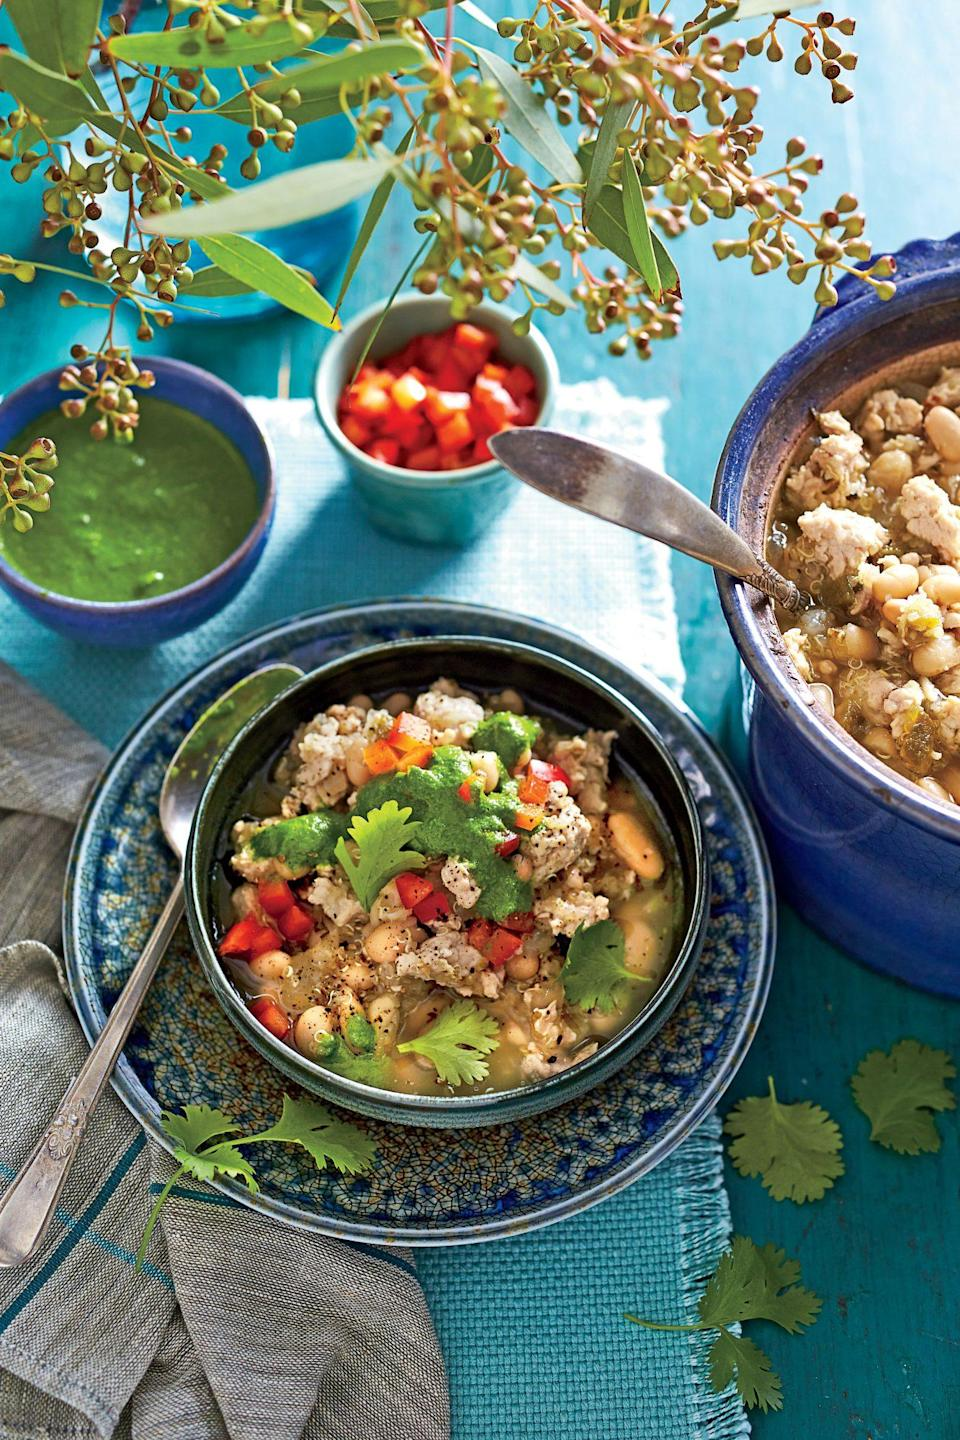 """<p><strong>Recipe: </strong><a href=""""https://www.southernliving.com/syndication/slow-cooker-turkey-chili-1"""" rel=""""nofollow noopener"""" target=""""_blank"""" data-ylk=""""slk:Slow-Cooker Turkey Chili with Quinoa"""" class=""""link rapid-noclick-resp""""><strong>Slow-Cooker Turkey Chili with Quinoa</strong></a></p> <p>This seasonal recipe proves chili doesn't have to be super unhealthy. We love any meal that comes together with the help of our slow cooker, and this lightened-up recipe uses ground turkey instead of ground beef.</p>"""